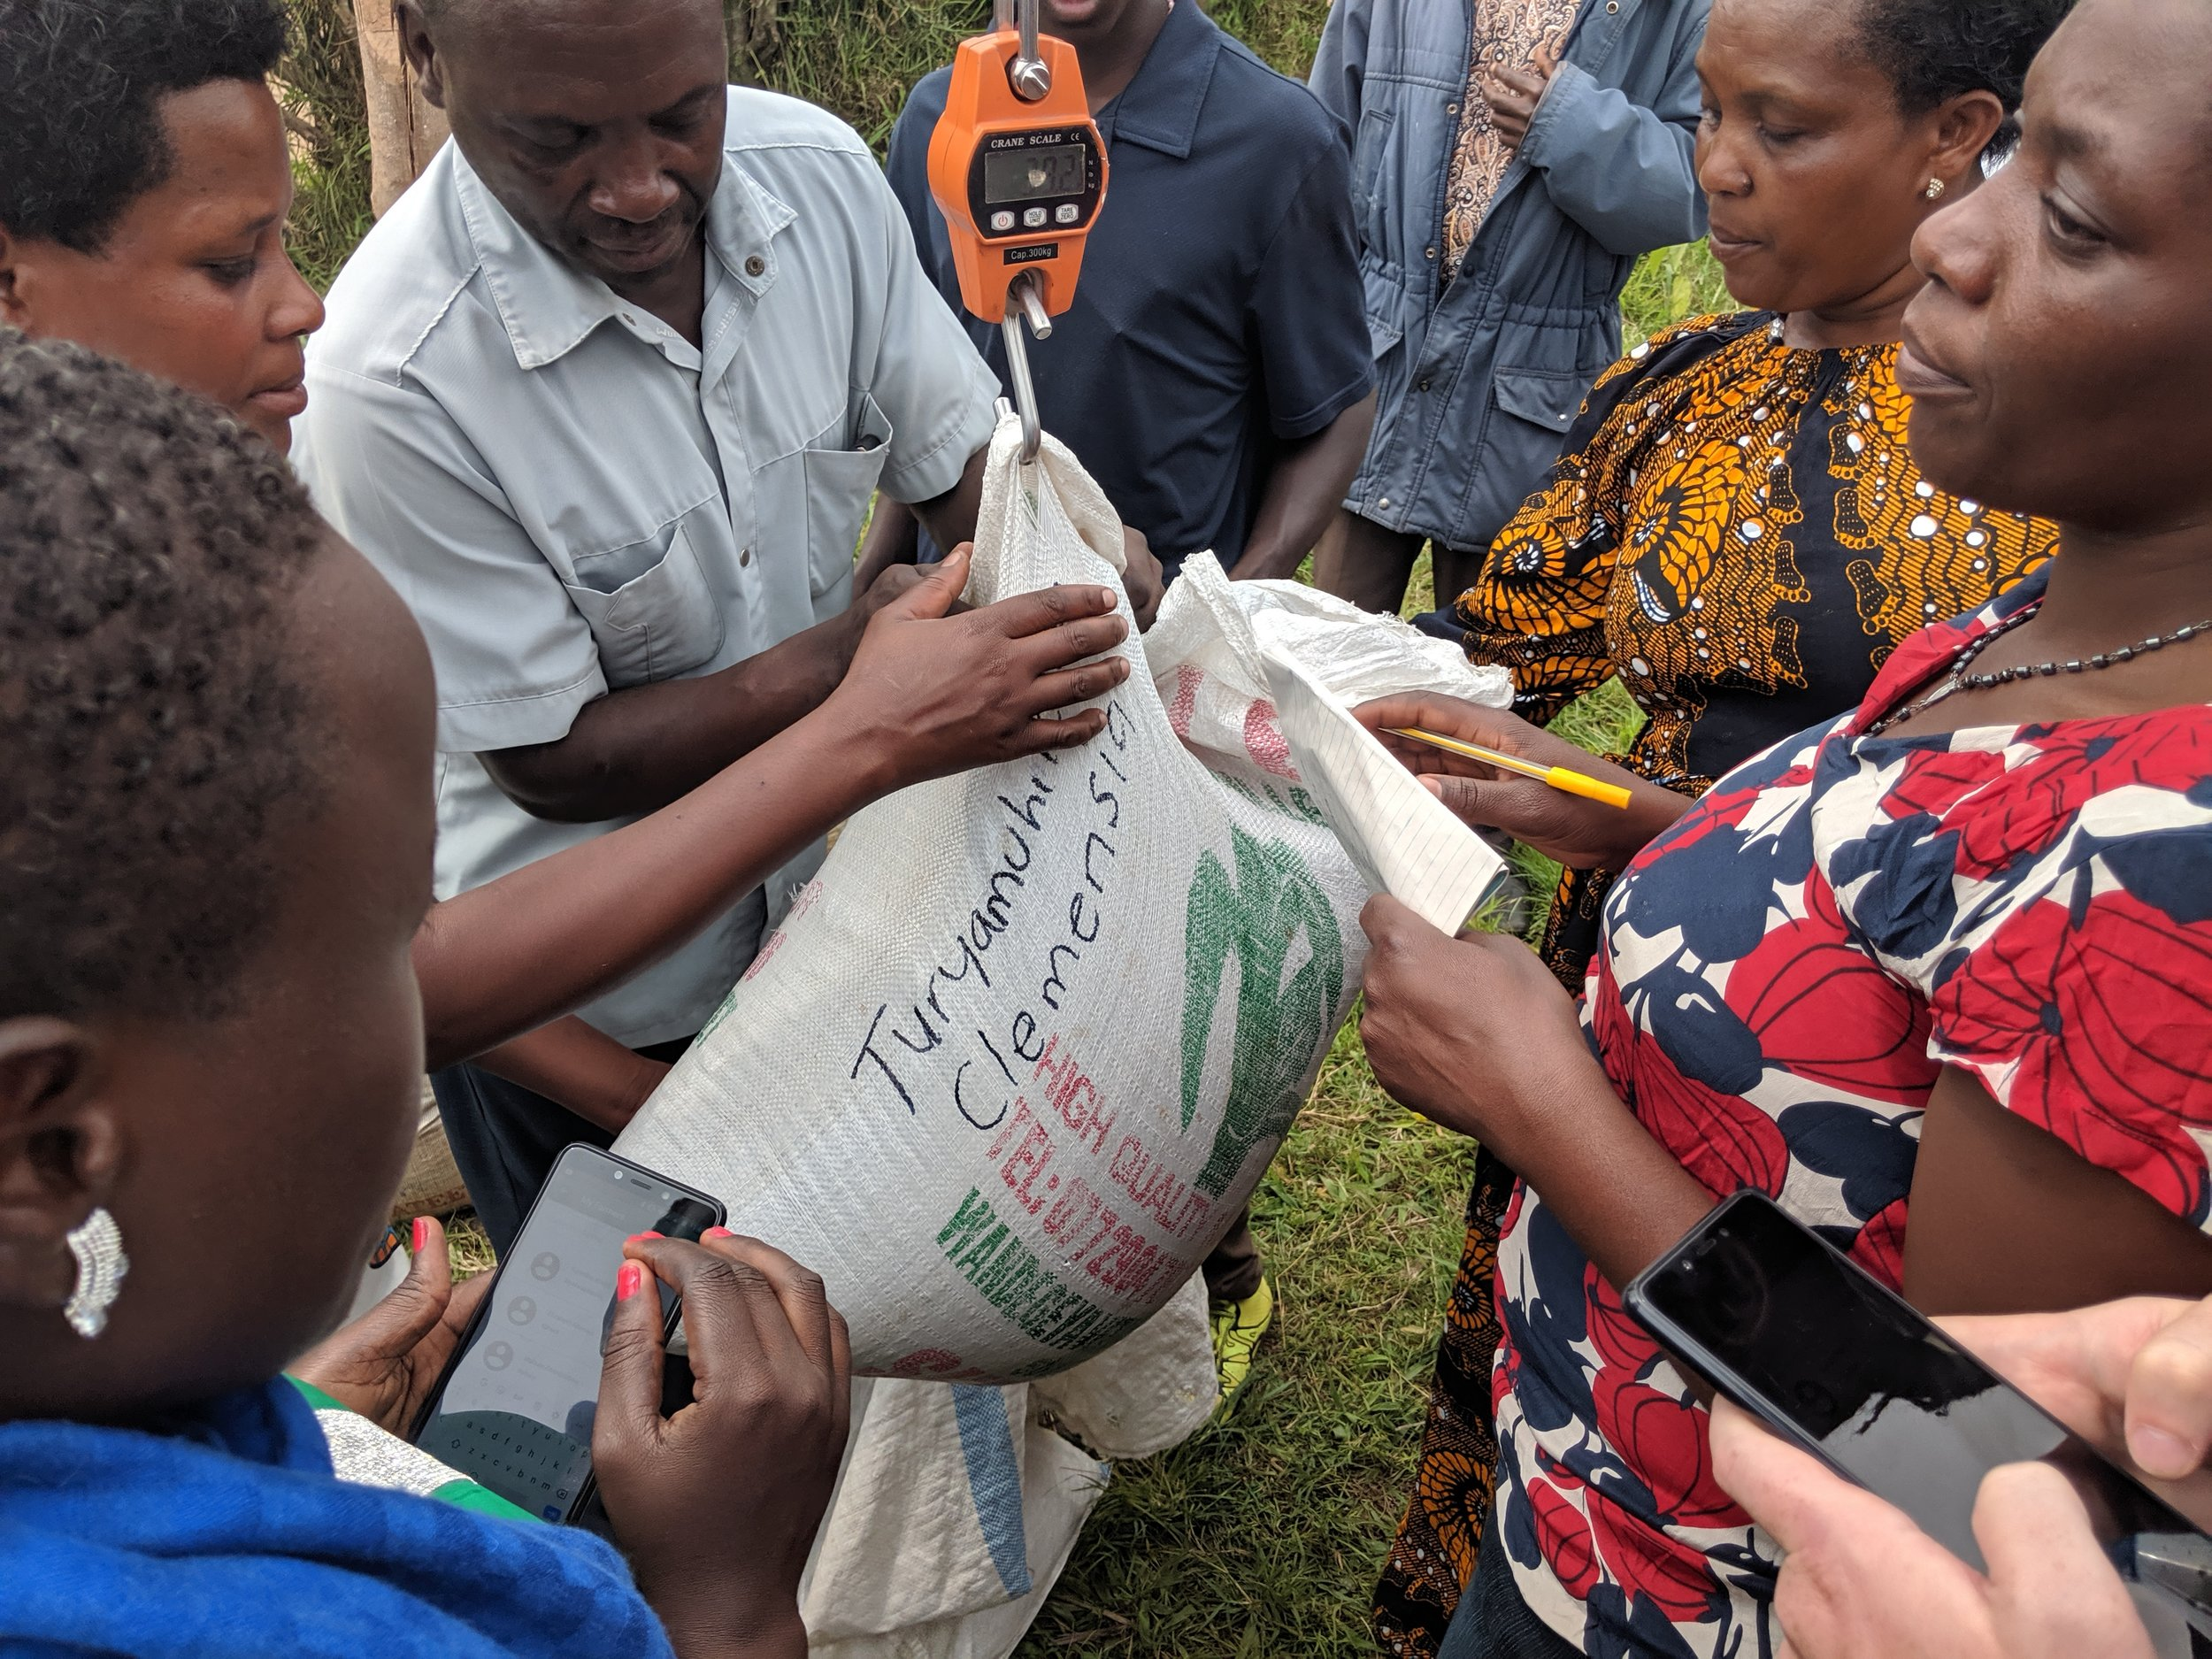 Representing more than 4,800 farmers, 87 percent of which are women, Manyakabi Area Cooperative Enterprise is one of two cooperatives USADF selected in Uganda to begin using the MFN platform, as seen here with the use of smartphones at the crop weighing and reporting process.